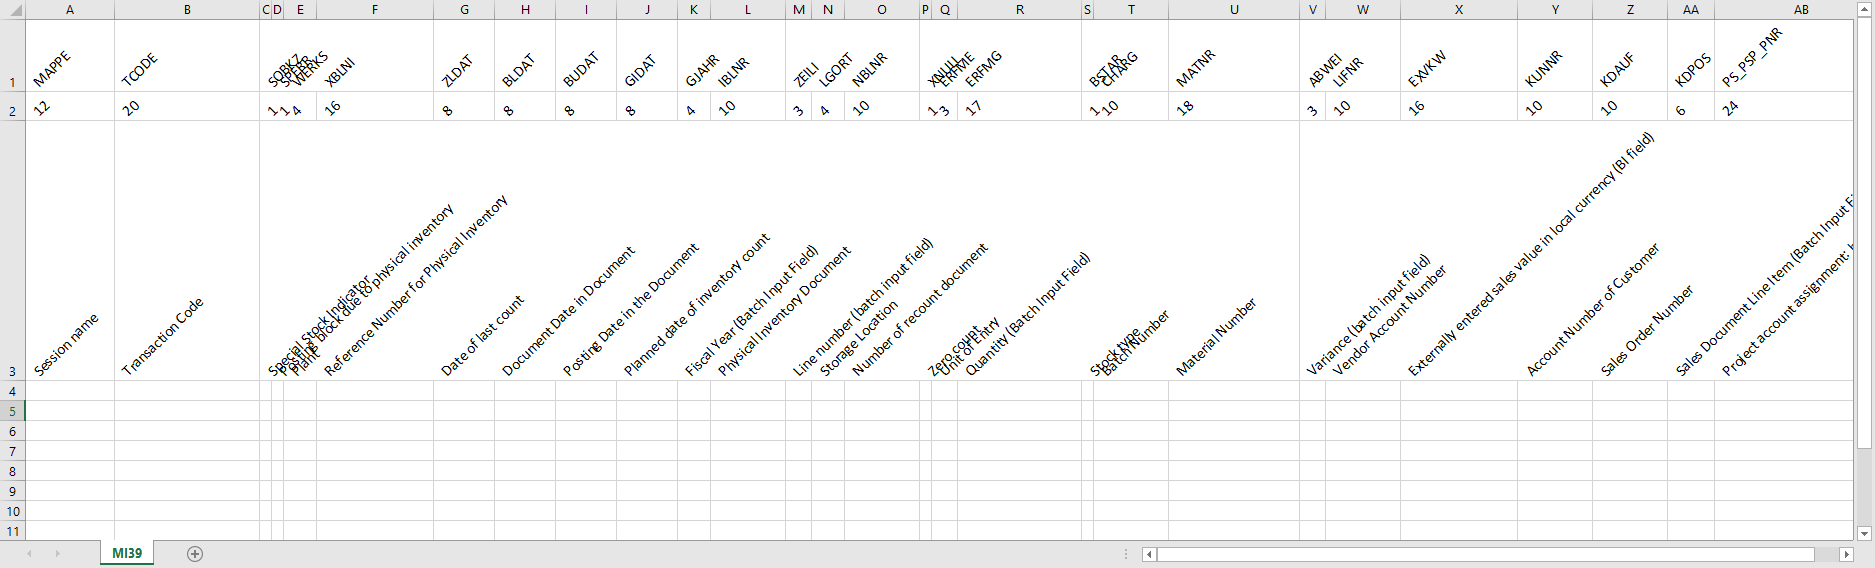 Excel%20File%20with%20BISEG%20Structure